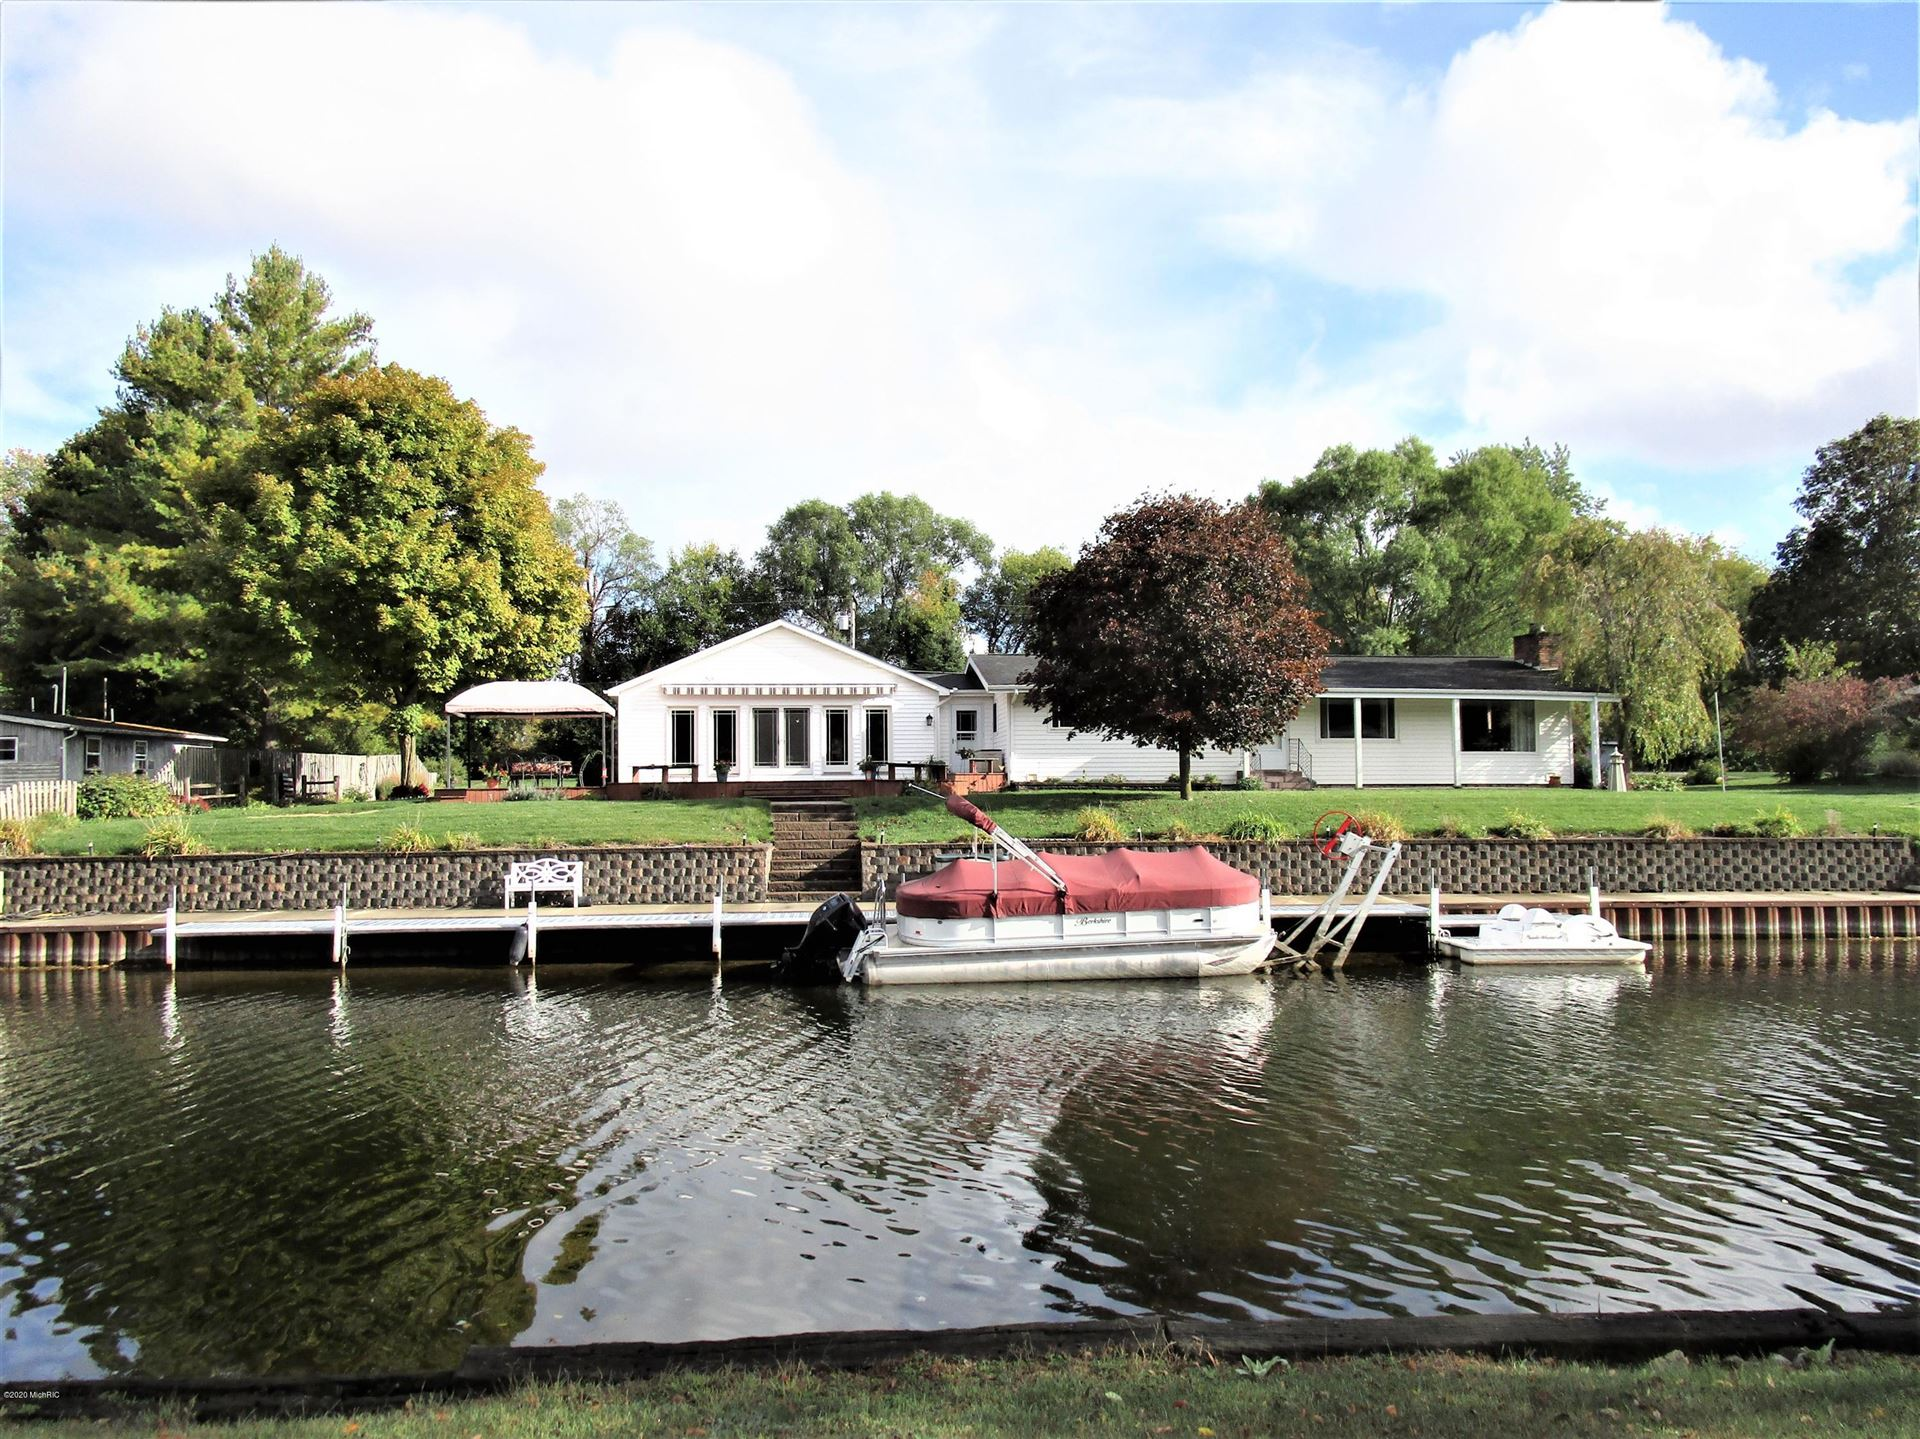 734 E Channel Dr. Drive, Coldwater, MI 49036 - MLS#: 20041564